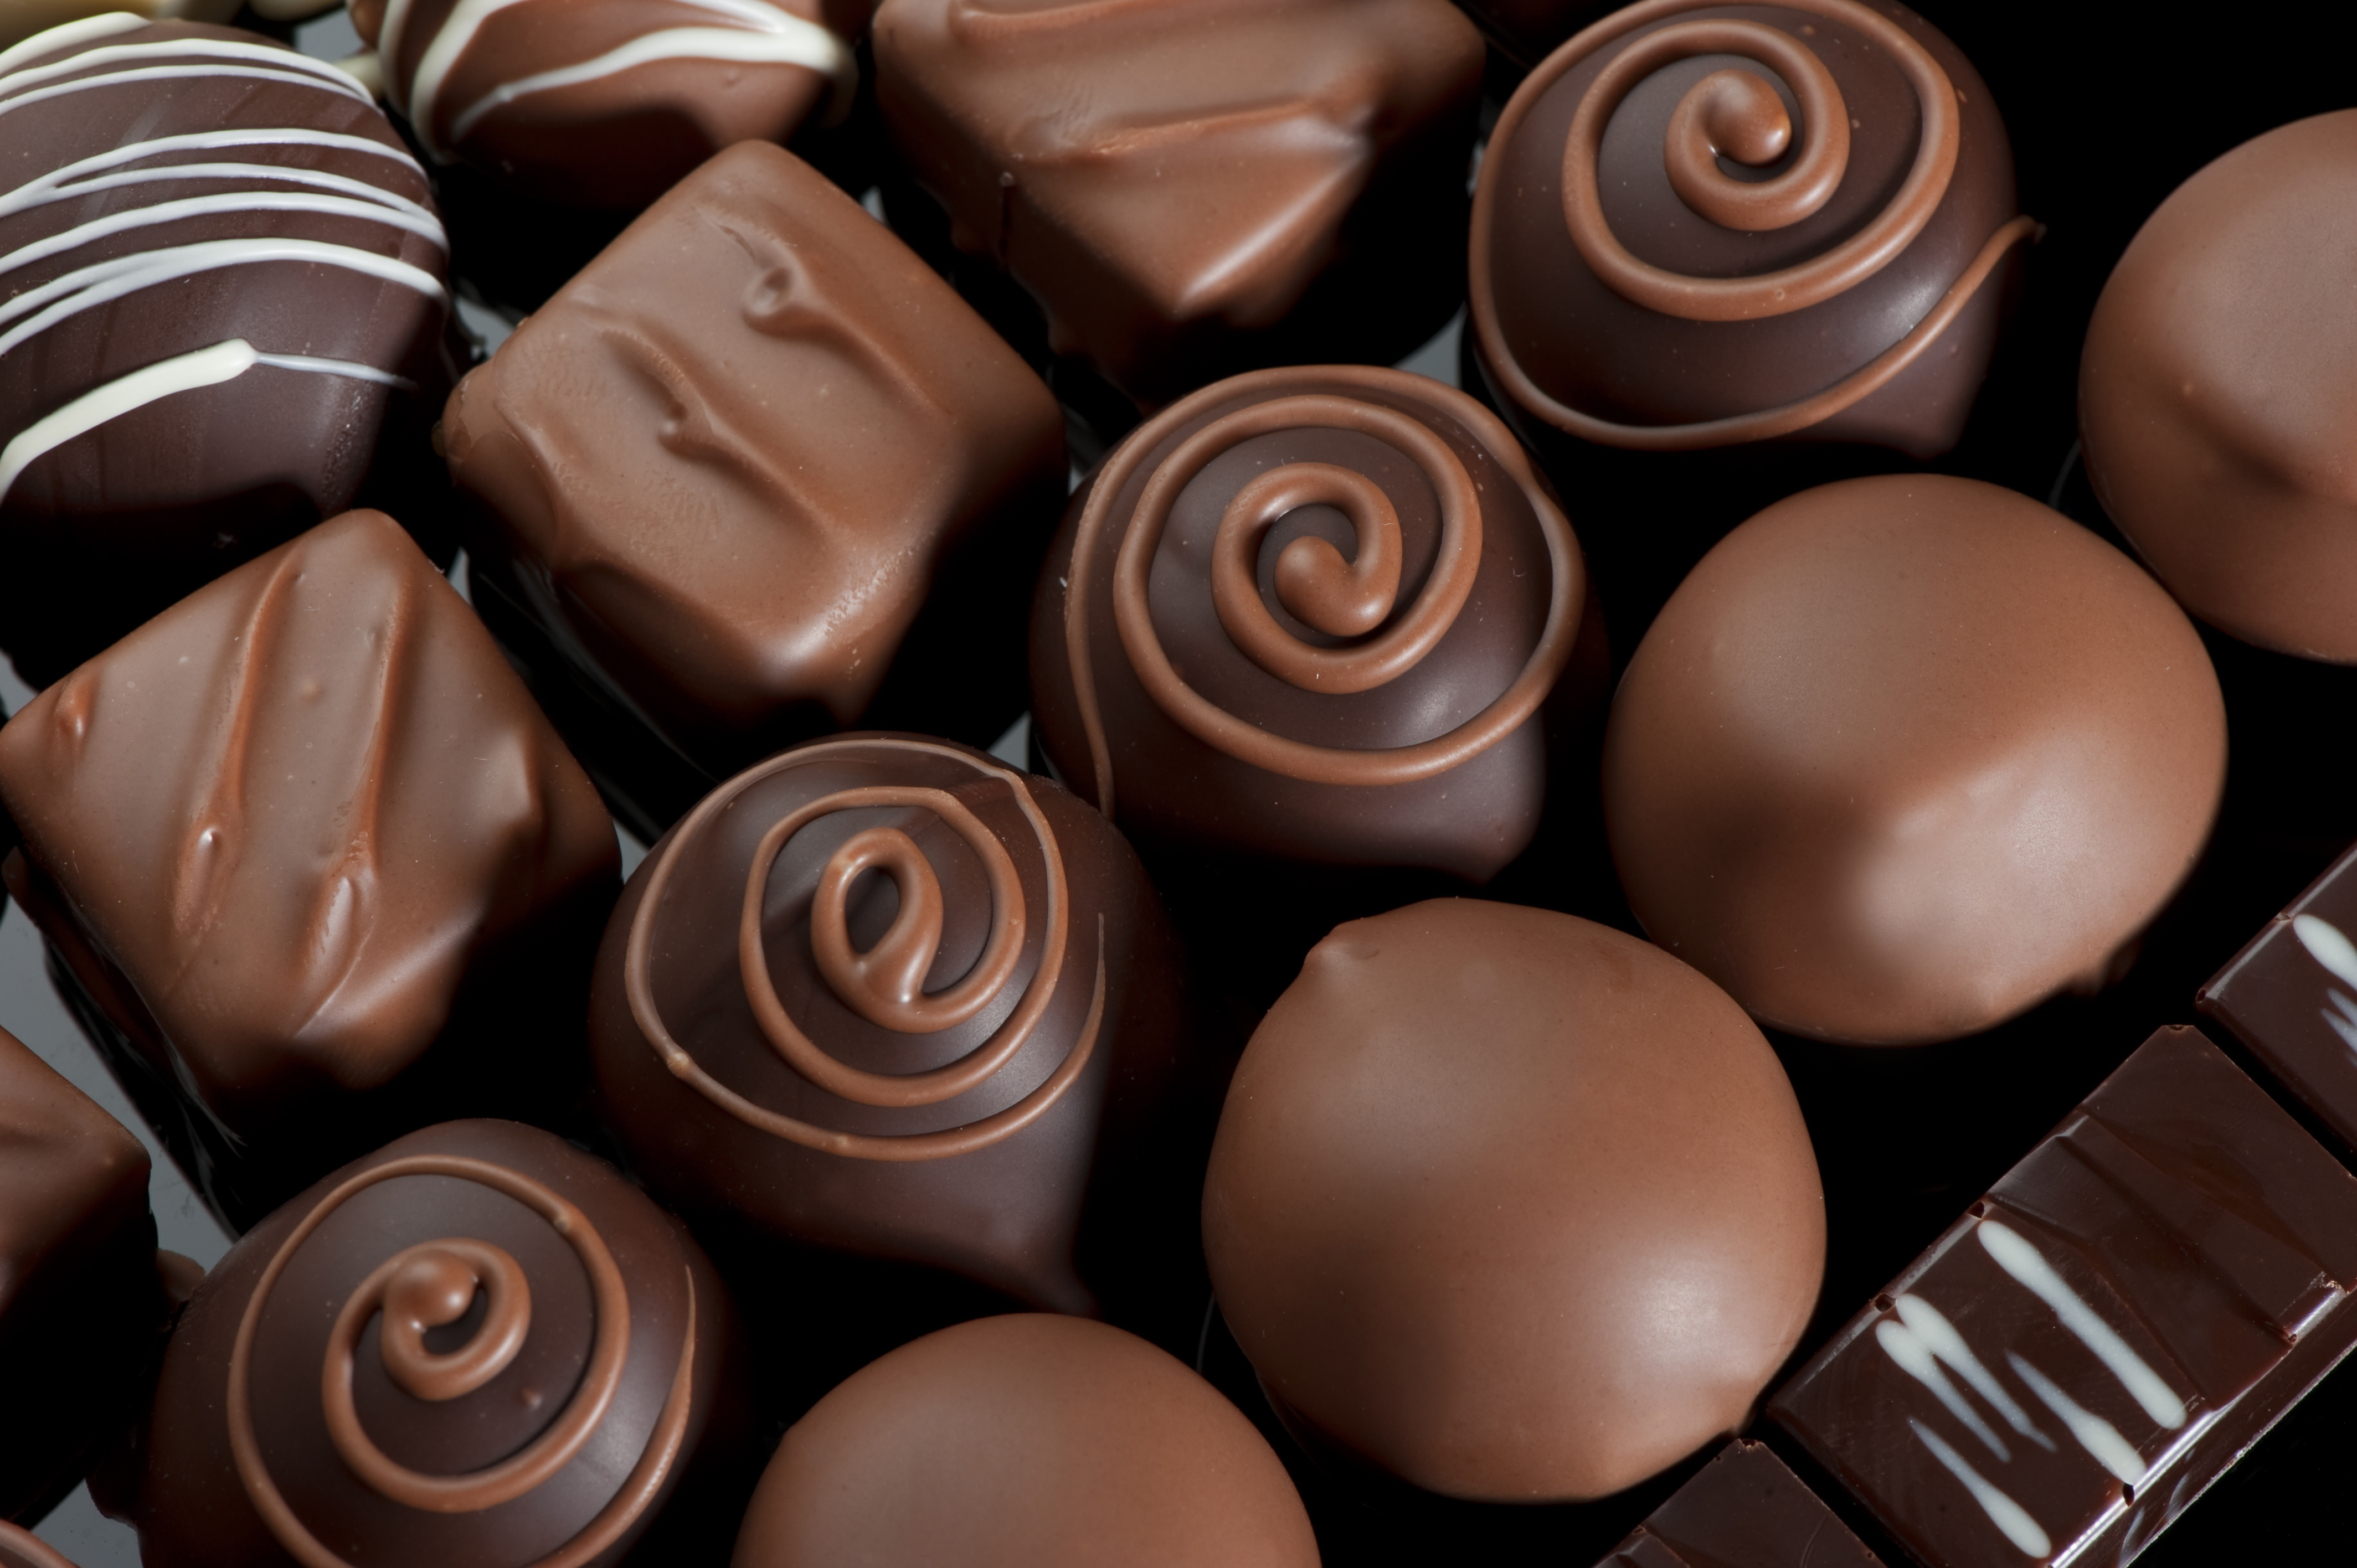 wallpaper Chocolate Chocolate candy download photo wallpapers 4256x2832